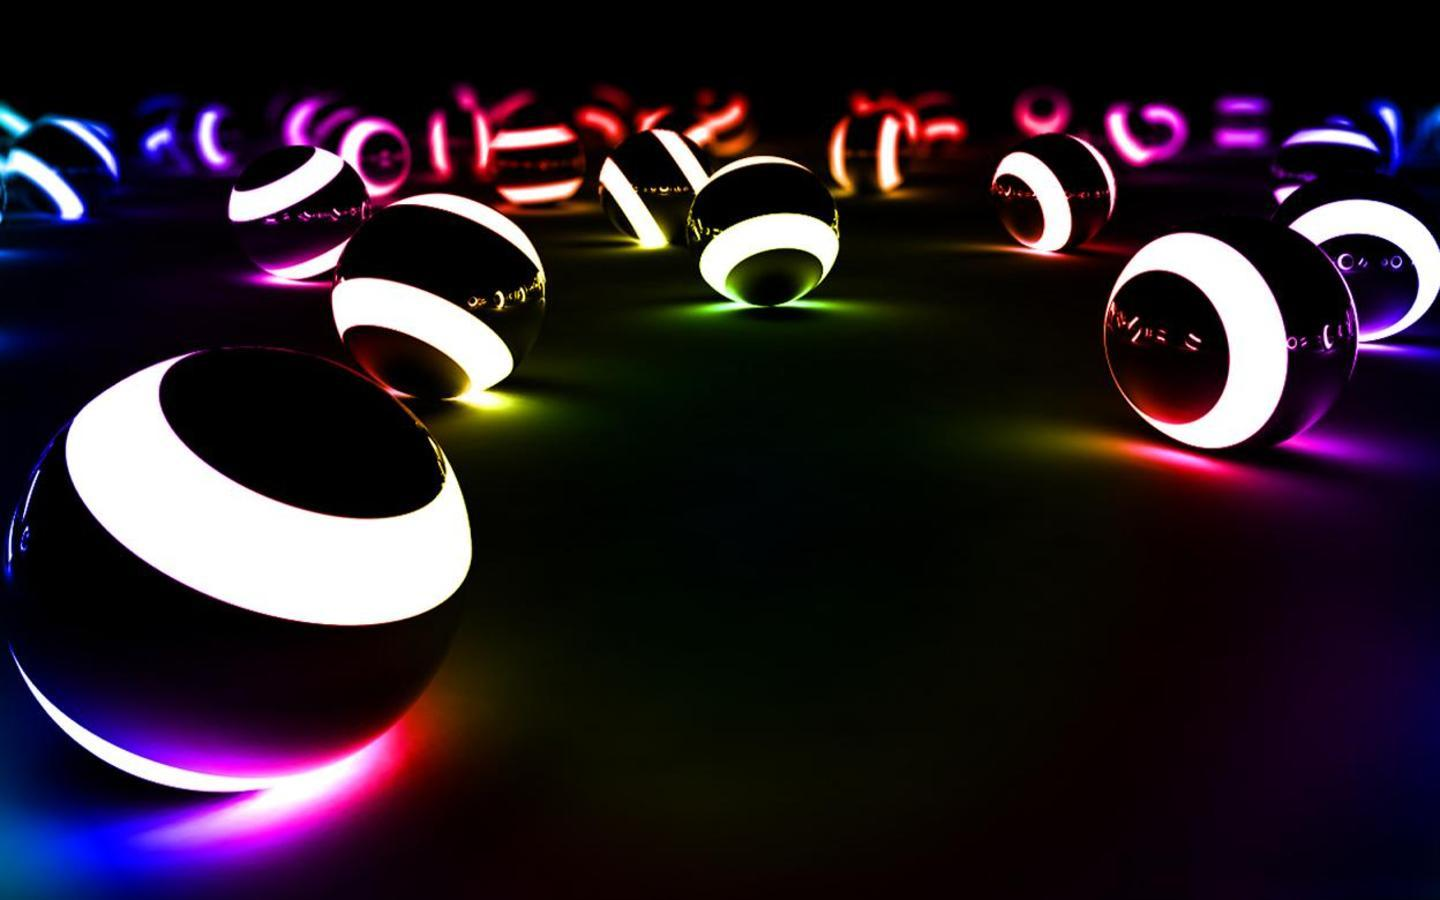 HD Neon Wallpapers For All